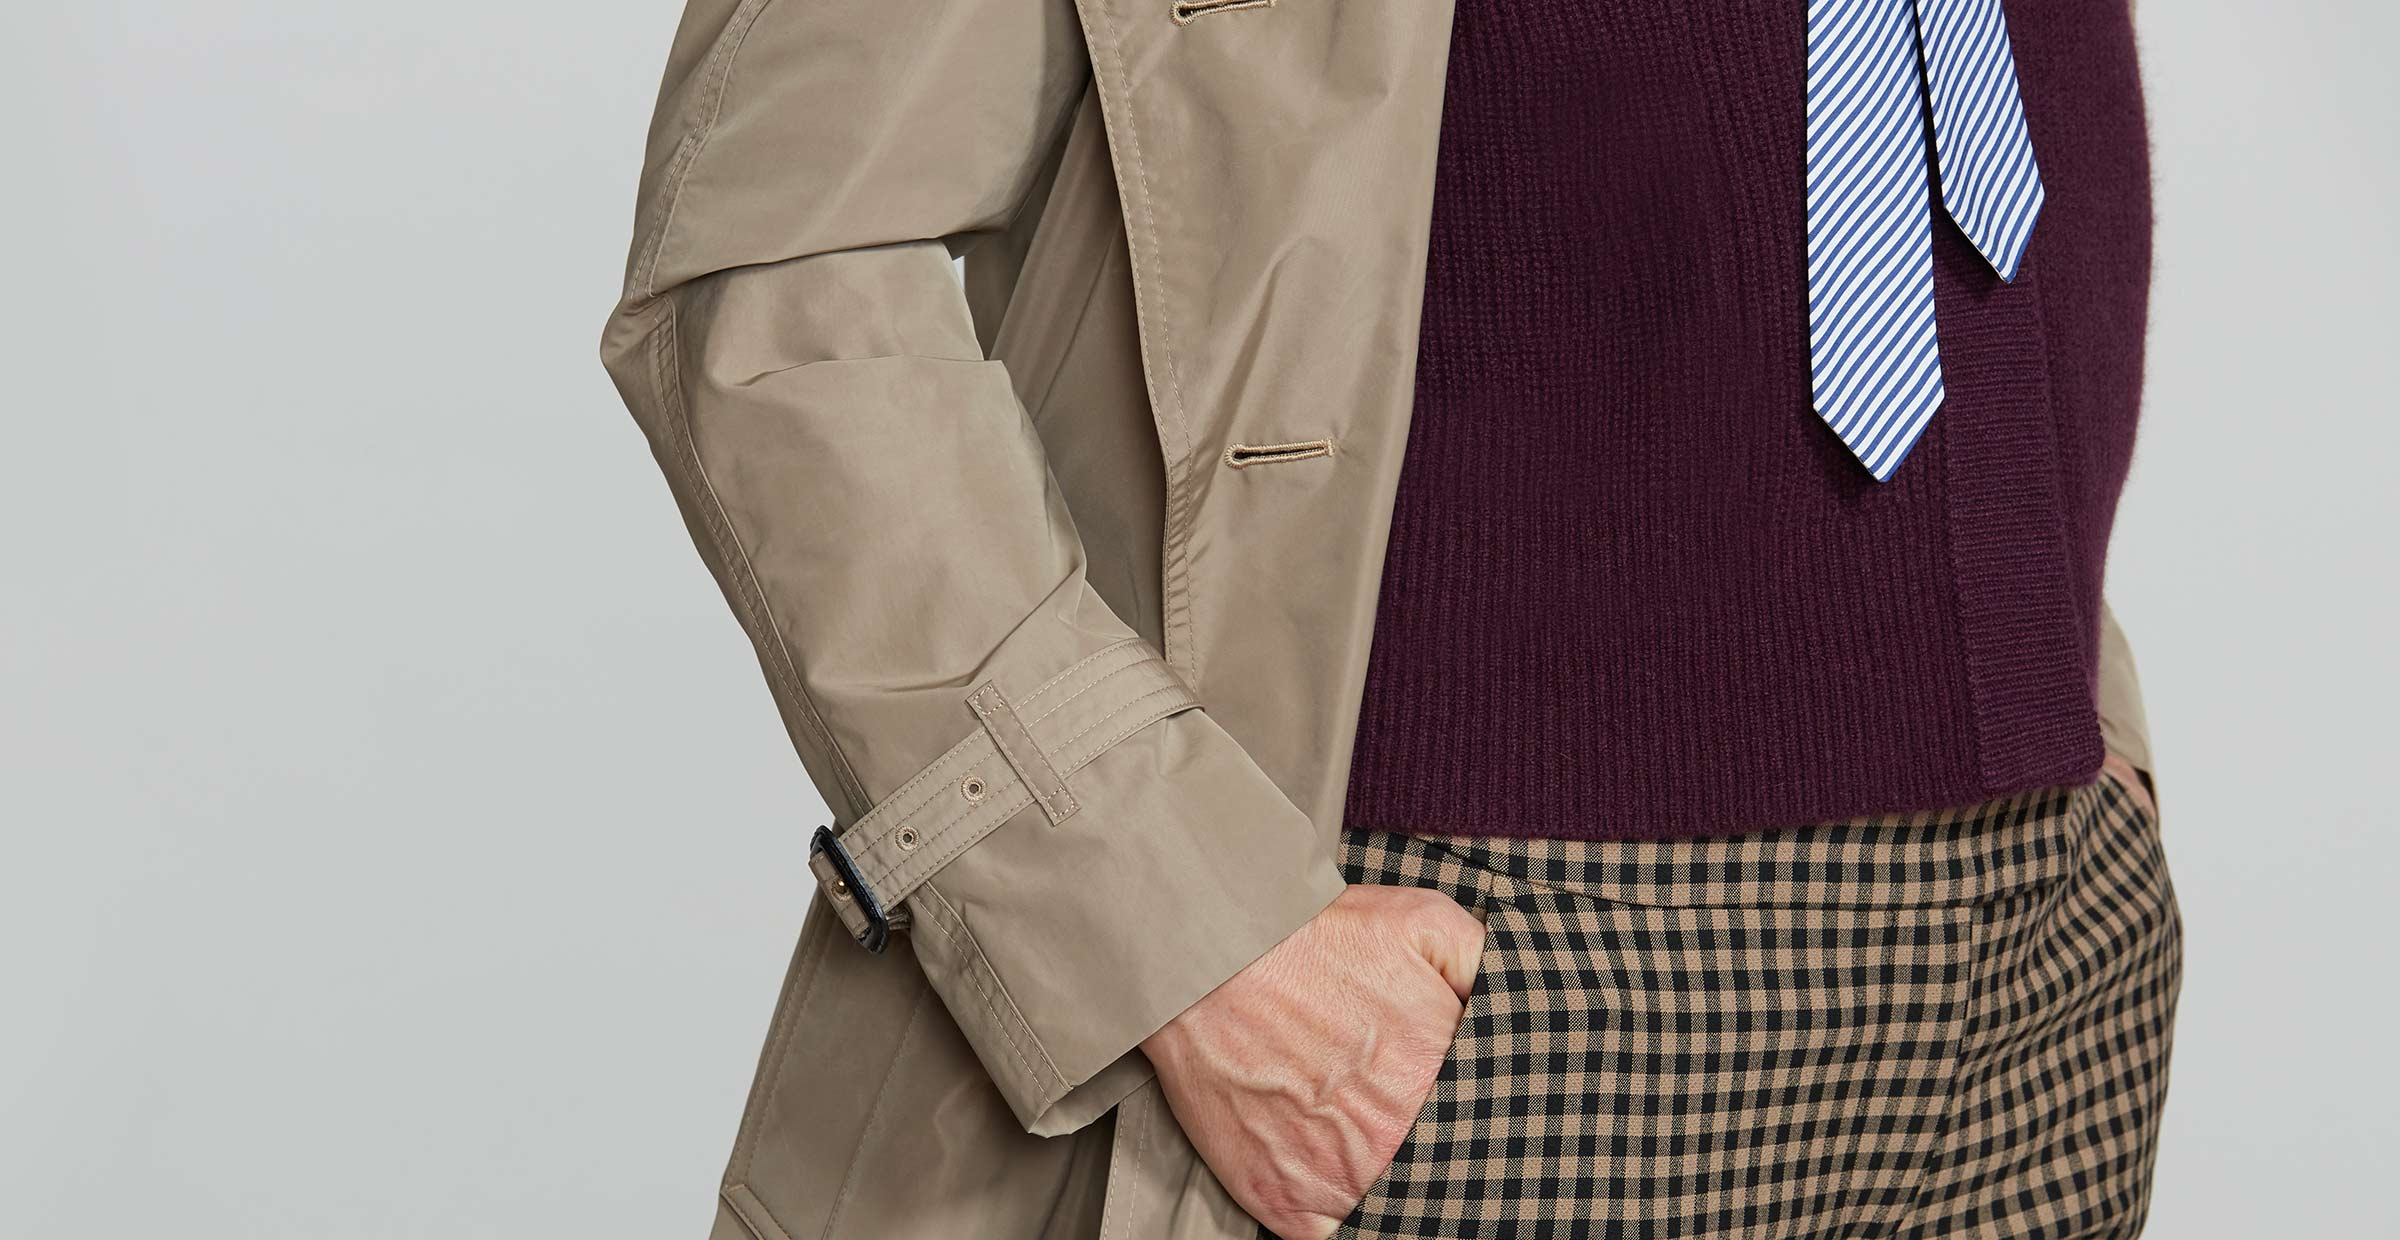 Detail shot of women's layered outfit